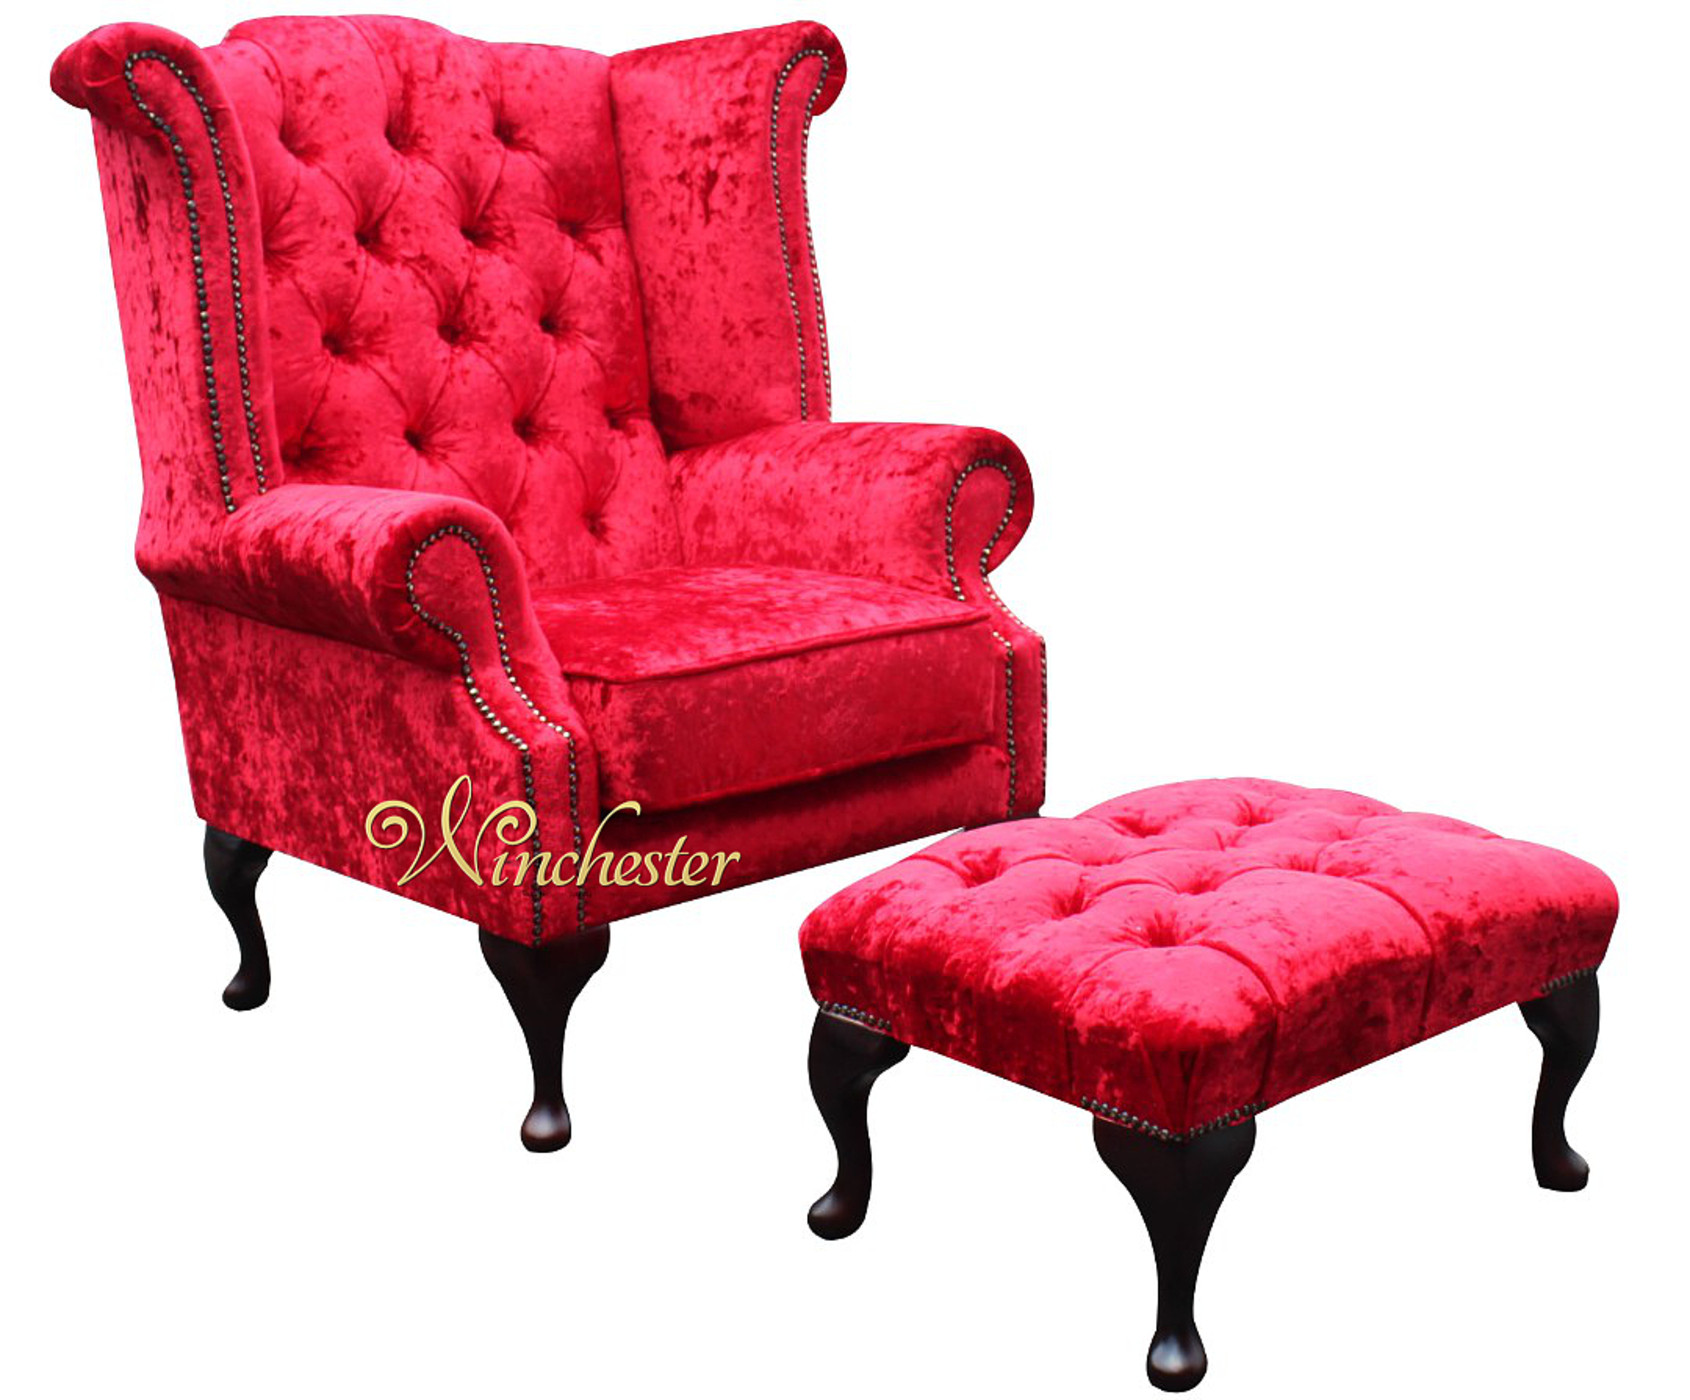 Chesterfield Queen Anne Wing Chair Plush Red Velvet Footstool Wc